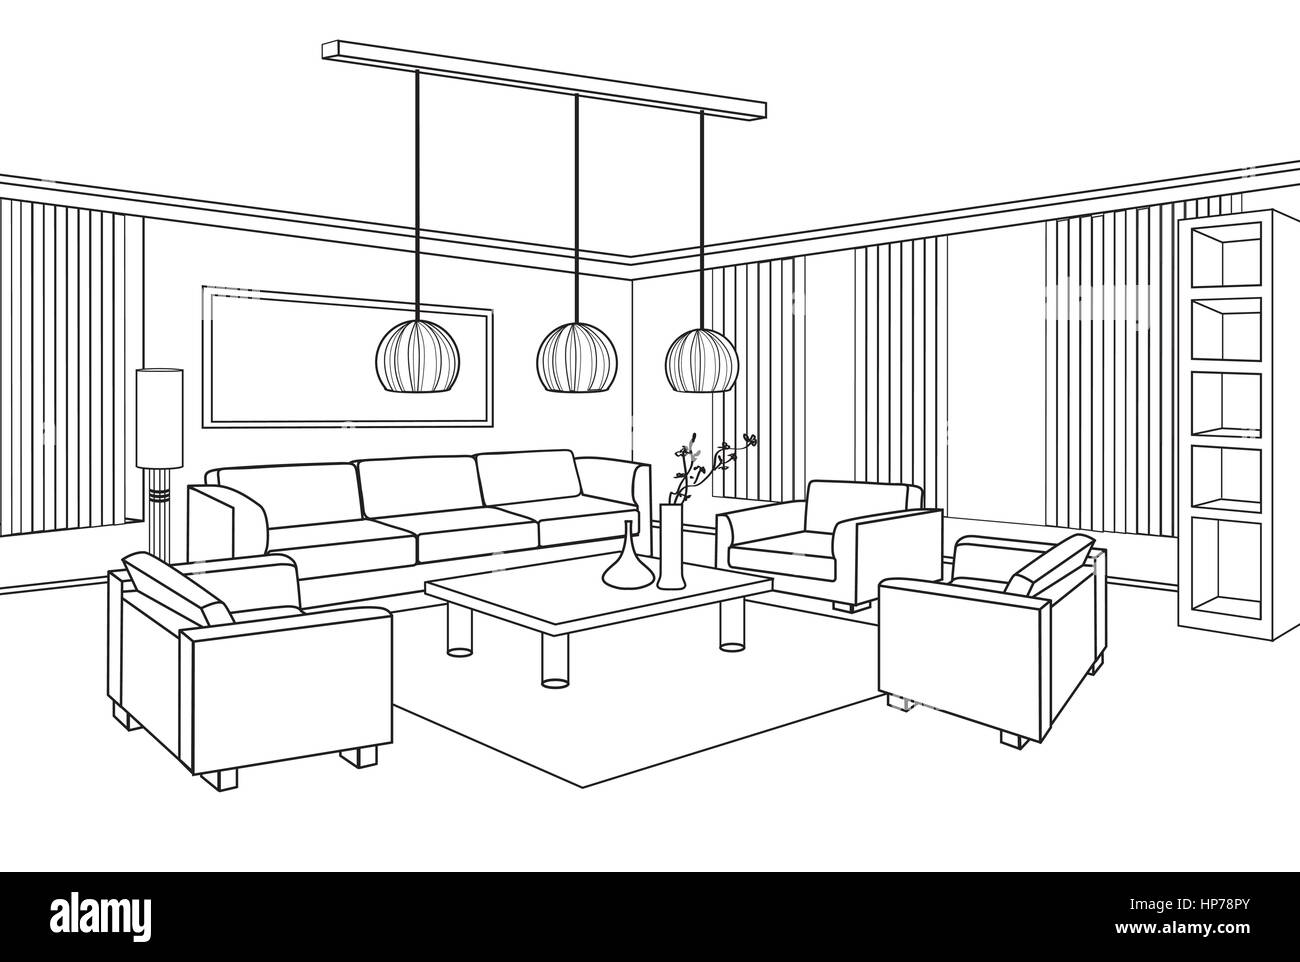 Living room view interior outline sketch furniture blueprint stock living room view interior outline sketch furniture blueprint malvernweather Choice Image